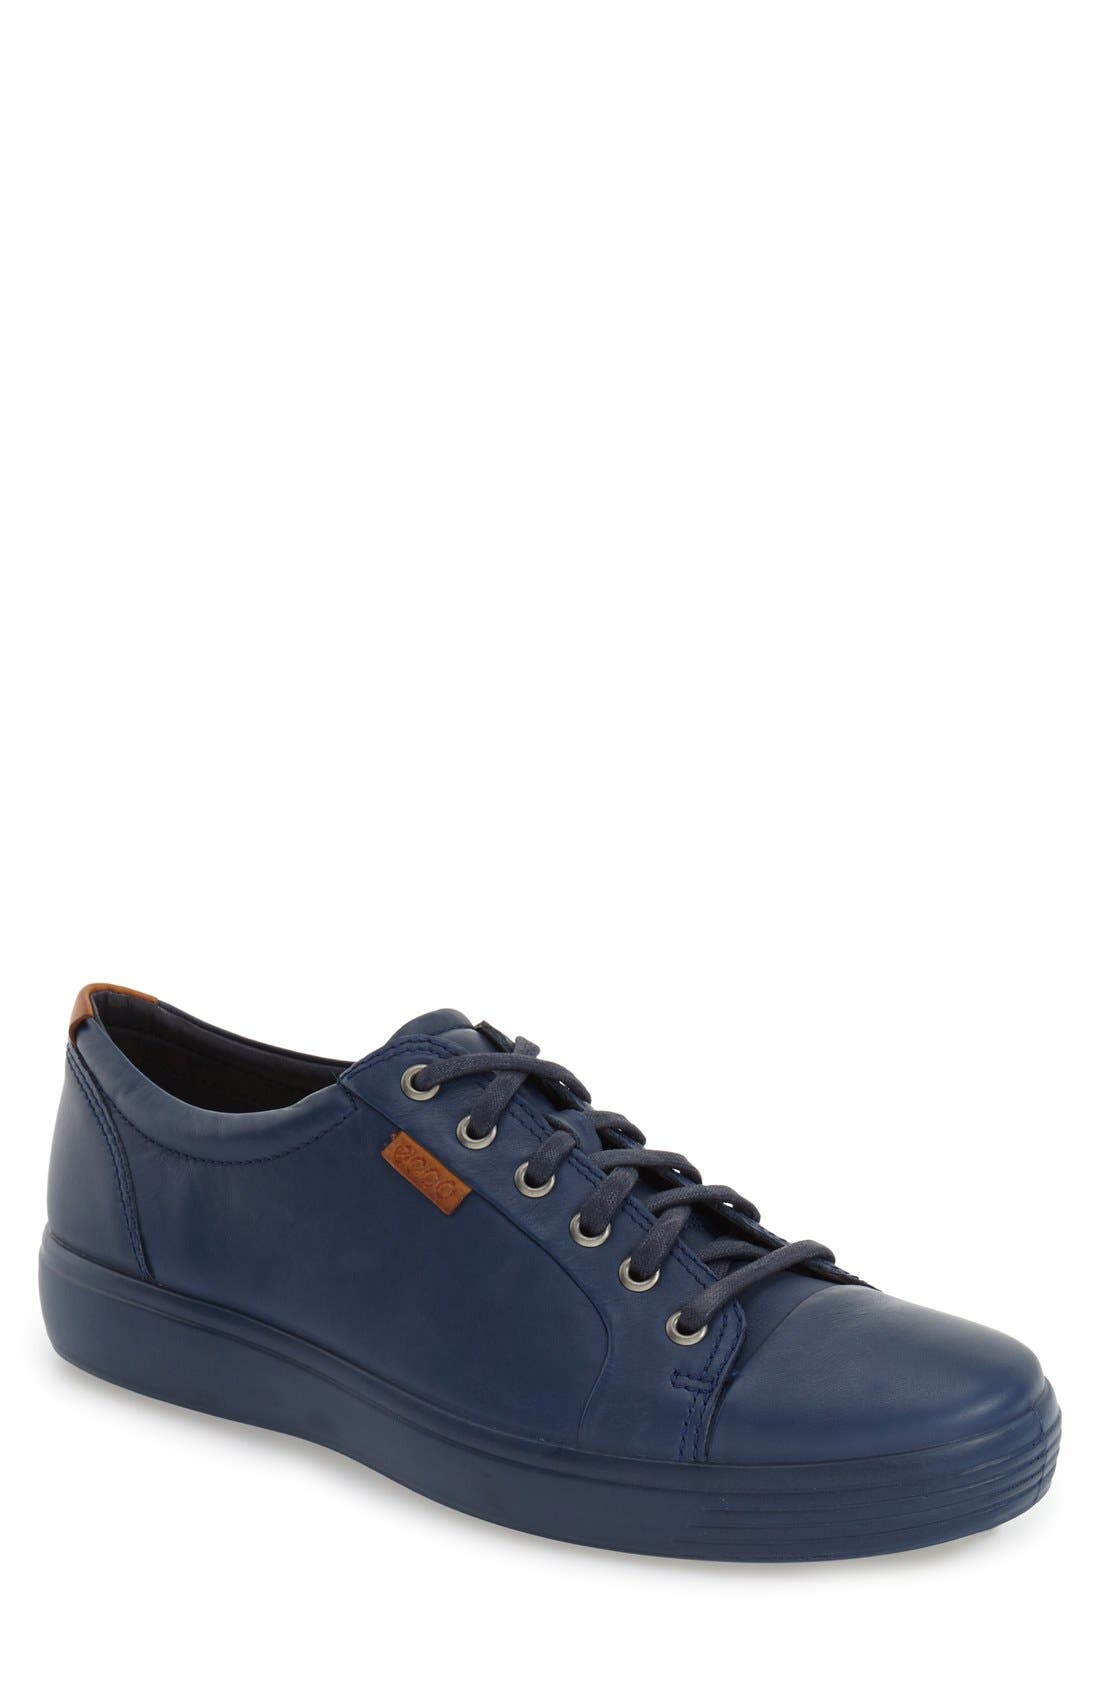 Soft VII Lace-Up Sneaker,                             Main thumbnail 18, color,